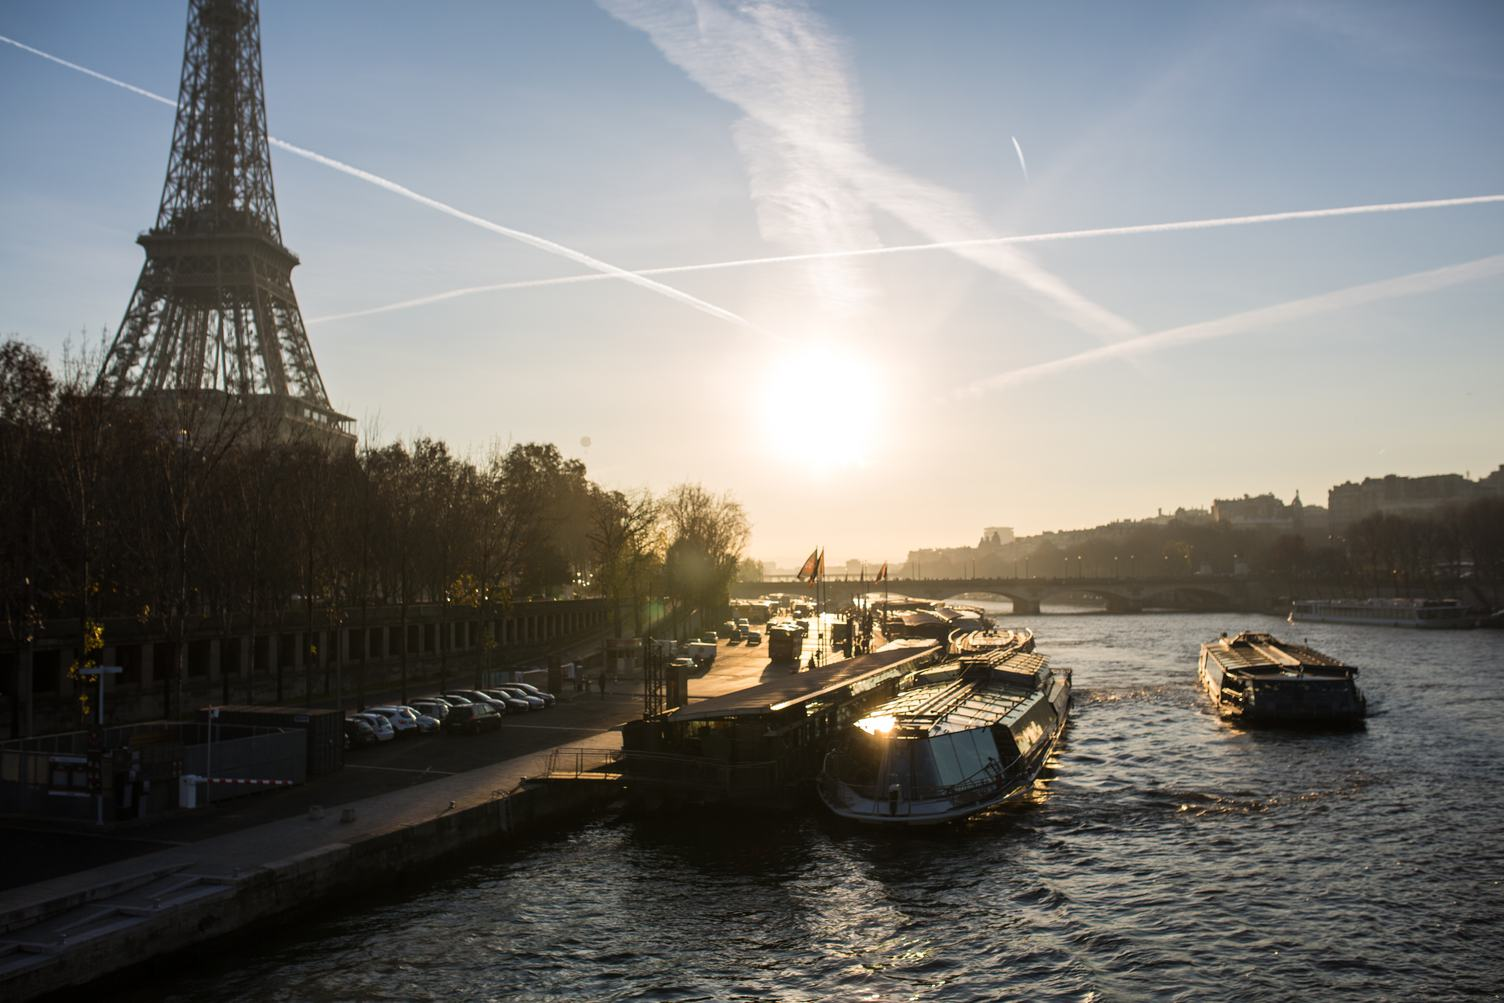 Boats on the Seine, Eiffel Tower in the Background, Paris, France